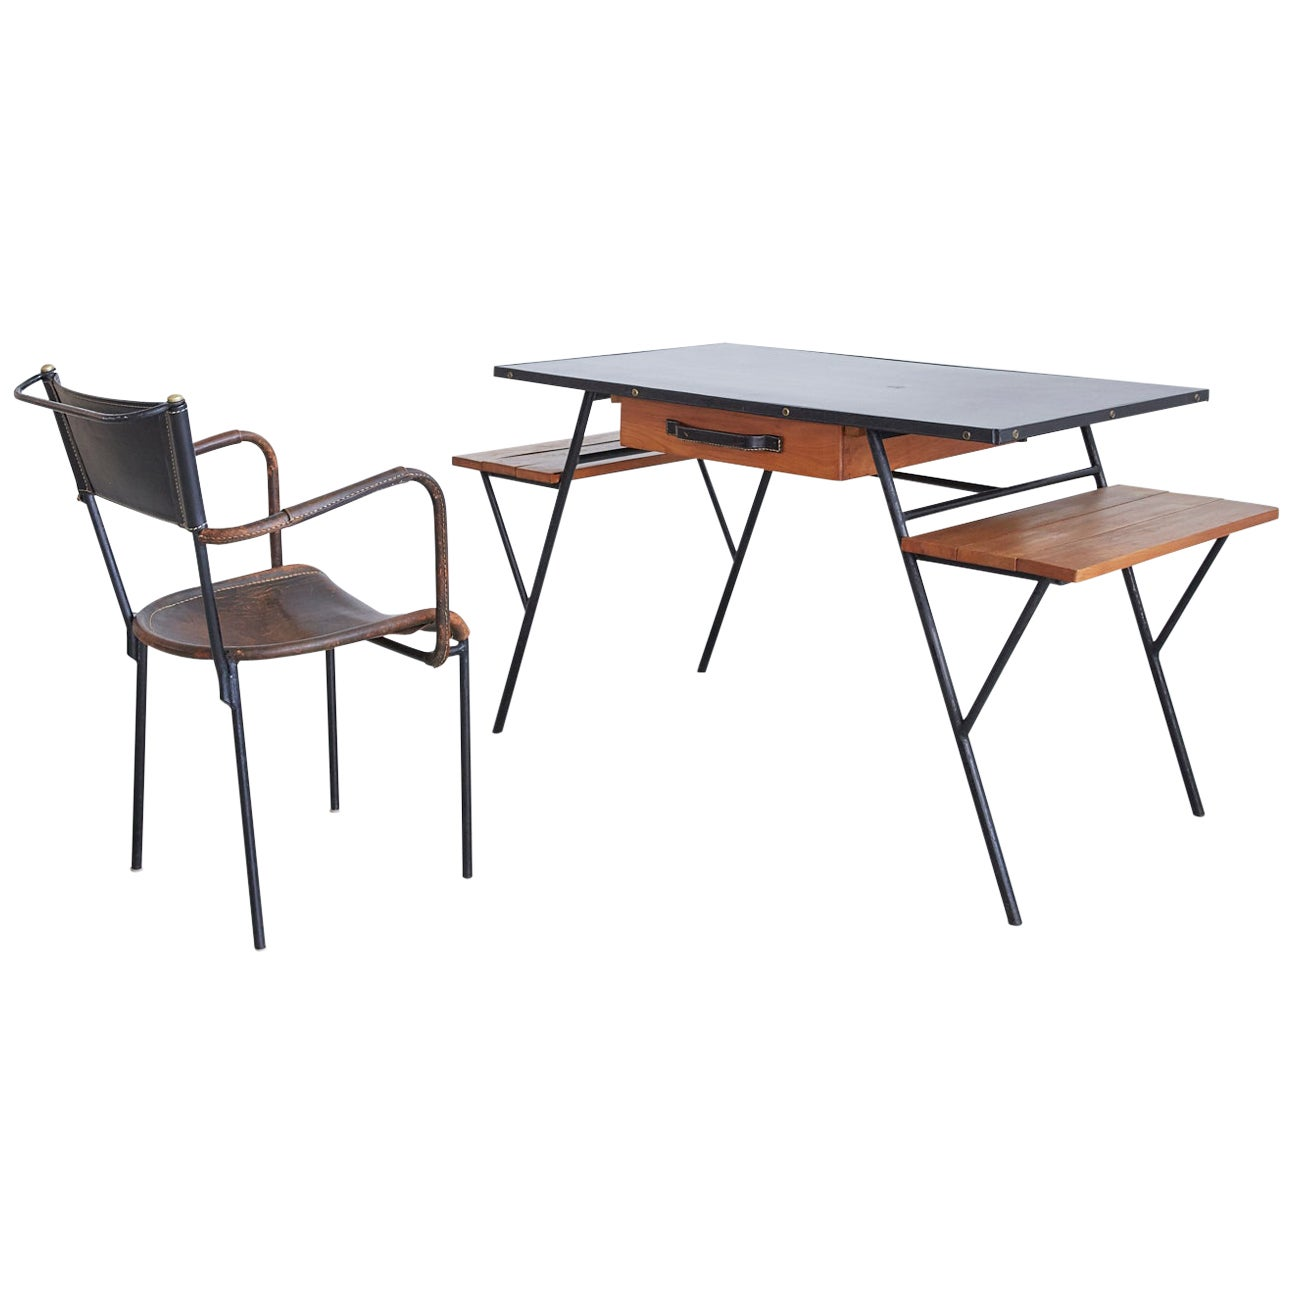 Jacques Adnet Desk and Chair